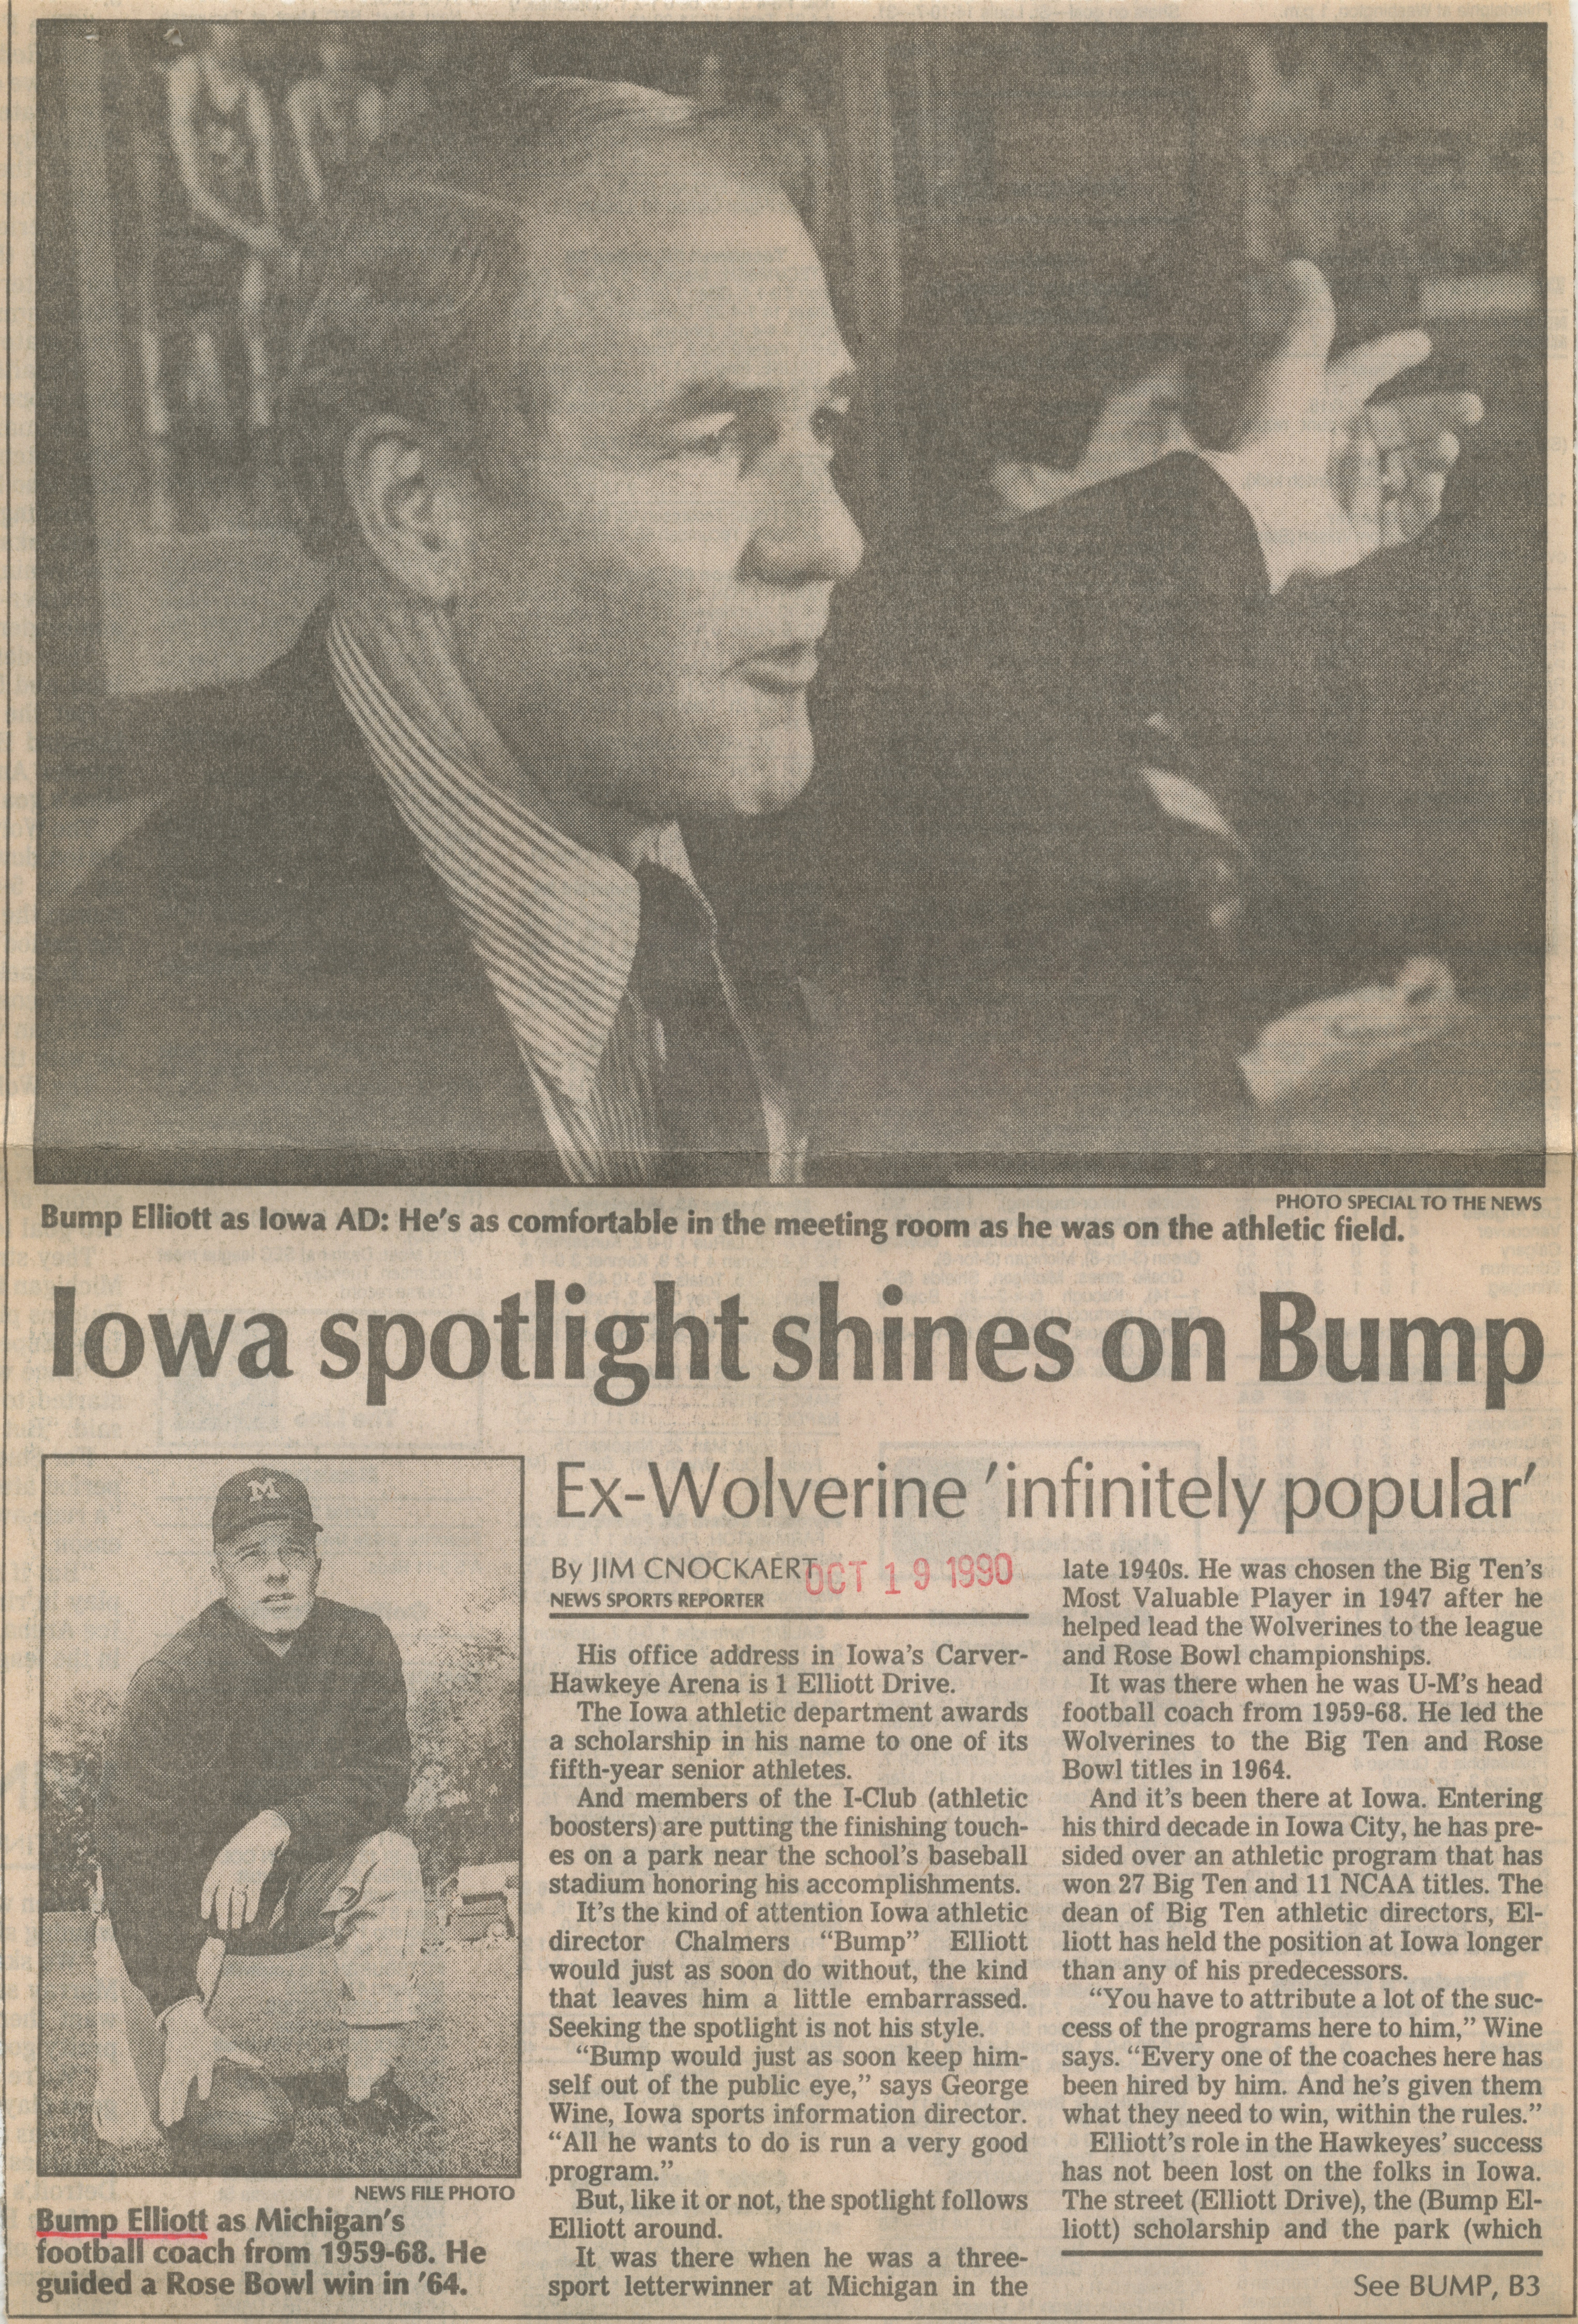 Iowa spotlight shines on Bump image